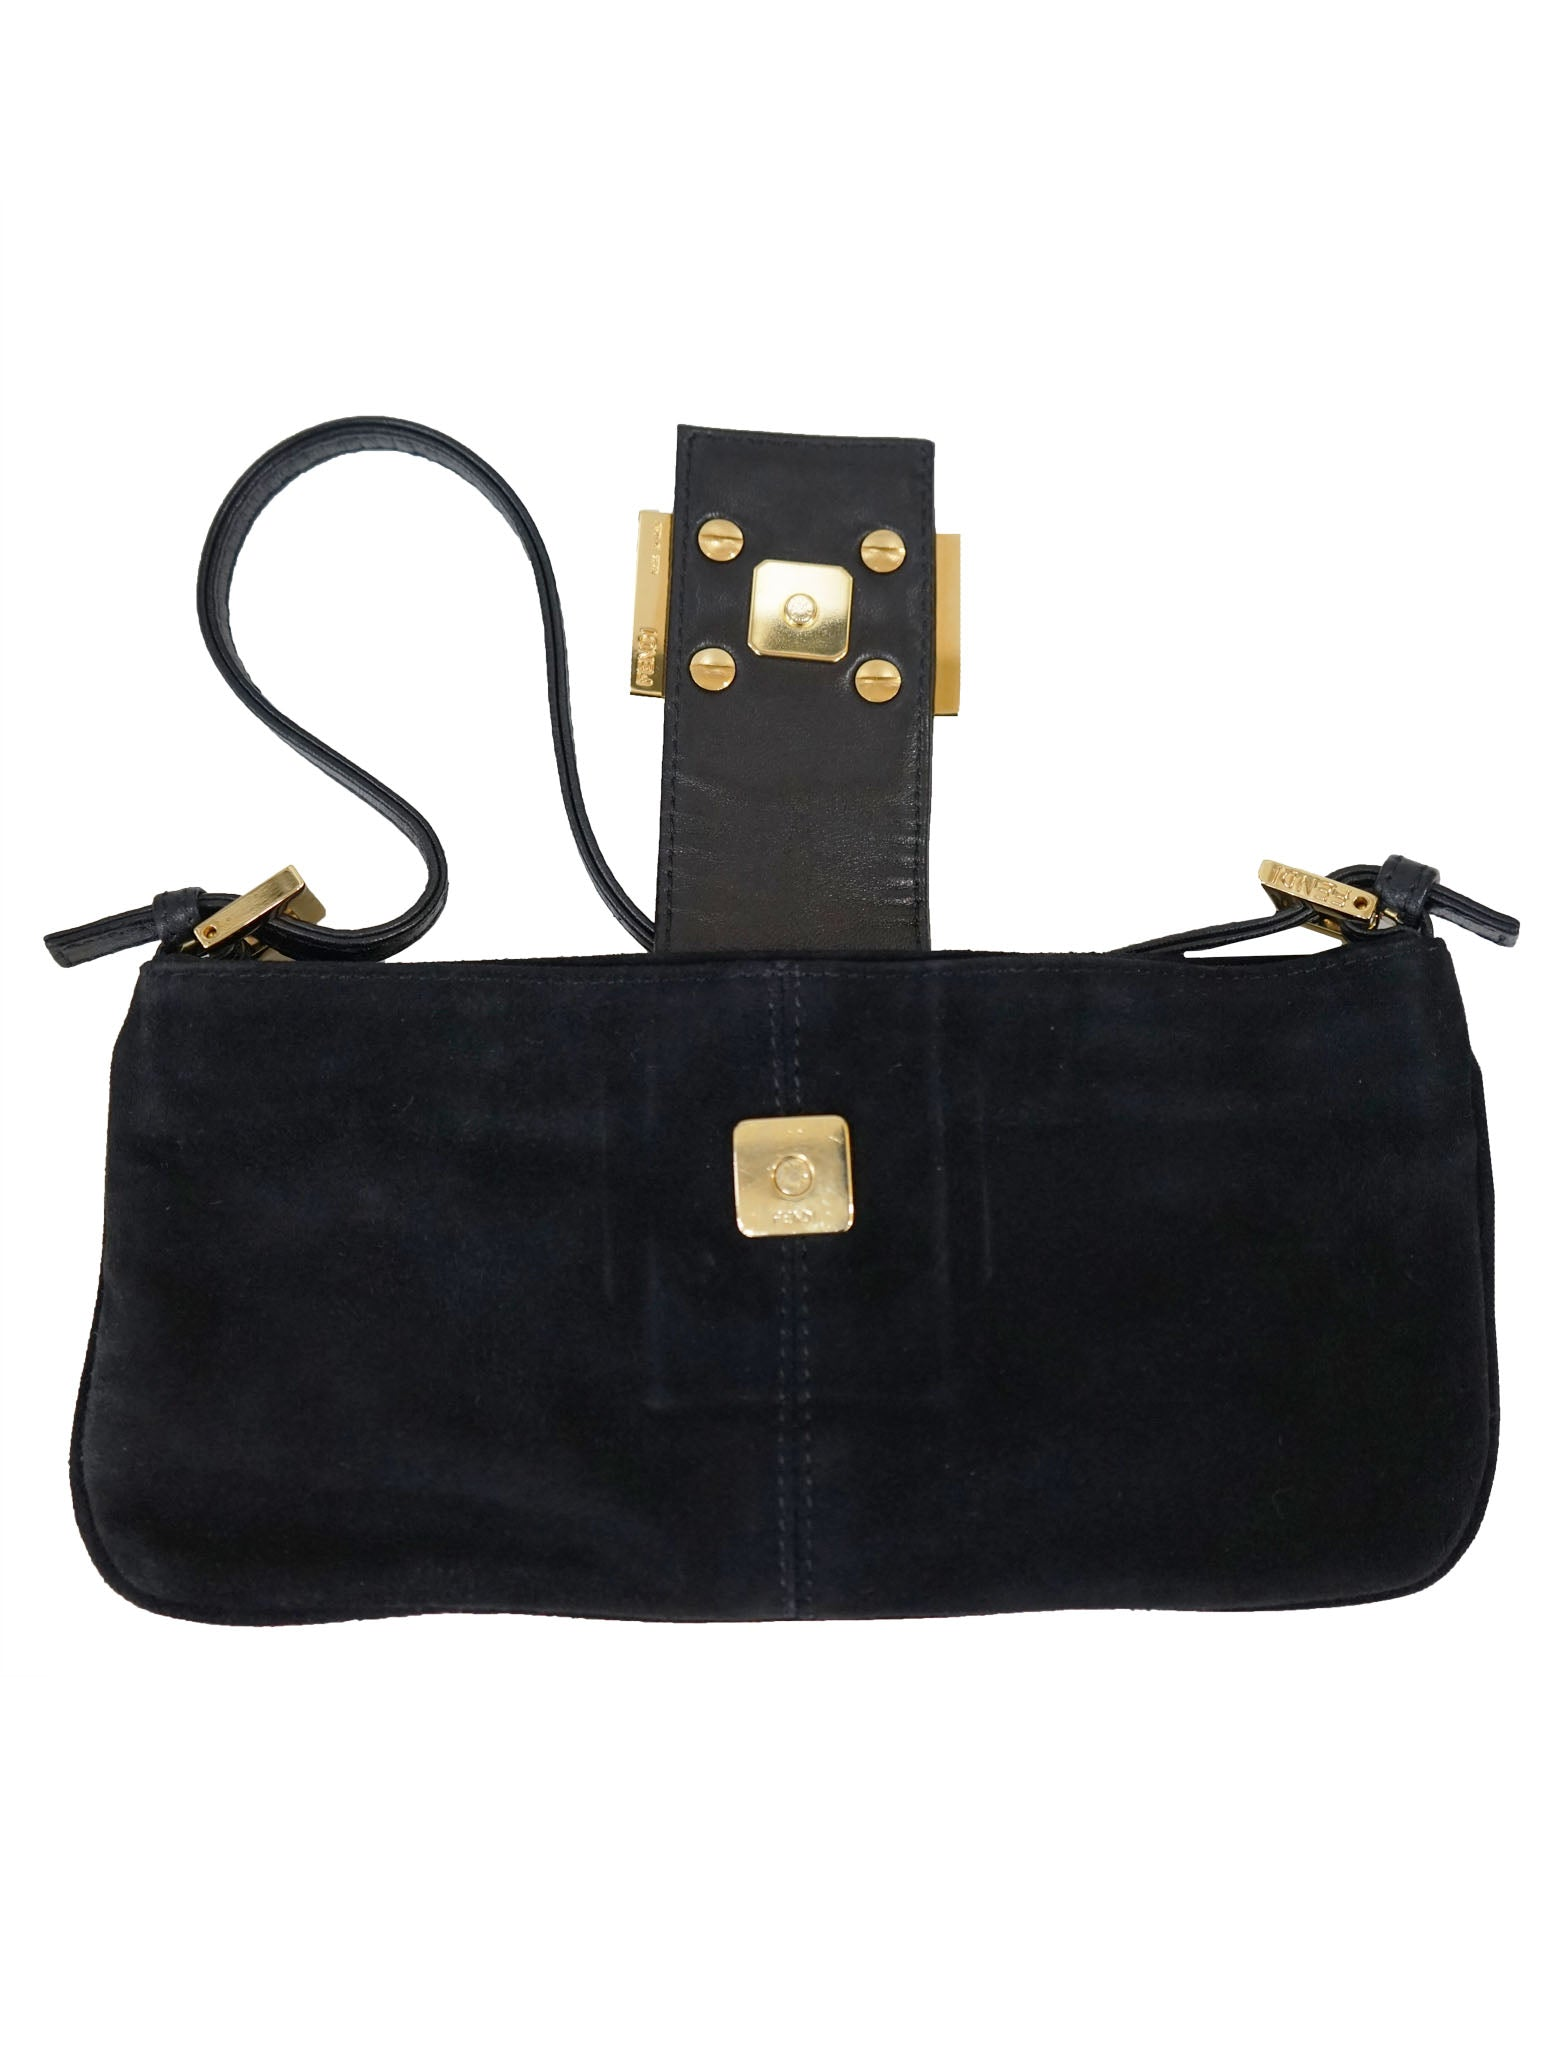 BLACK SUEDE BAGUETTE SHOULDER BAG - kidsstyleforless